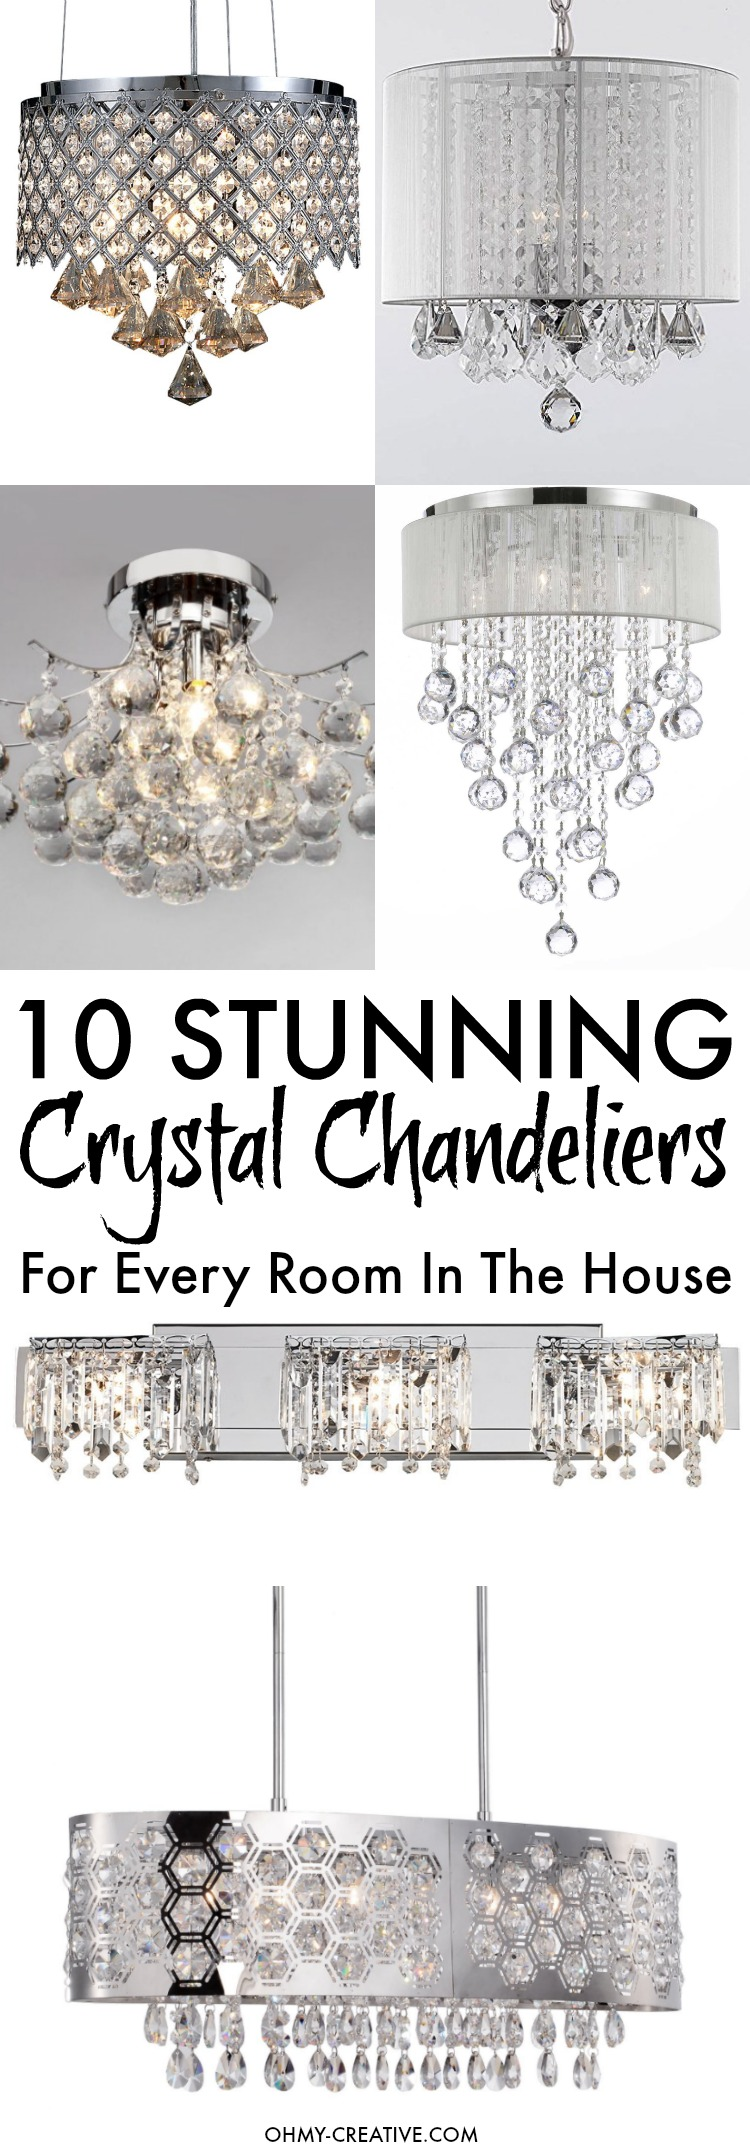 10 Stunning Crystal Chandeliers For Every Room In The House! Update old lights with a little bling and glamour perfect for dining rooms, hallways, bedrooms or bathrooms to update or transform the room! | OHMY-CREATIVE.COM